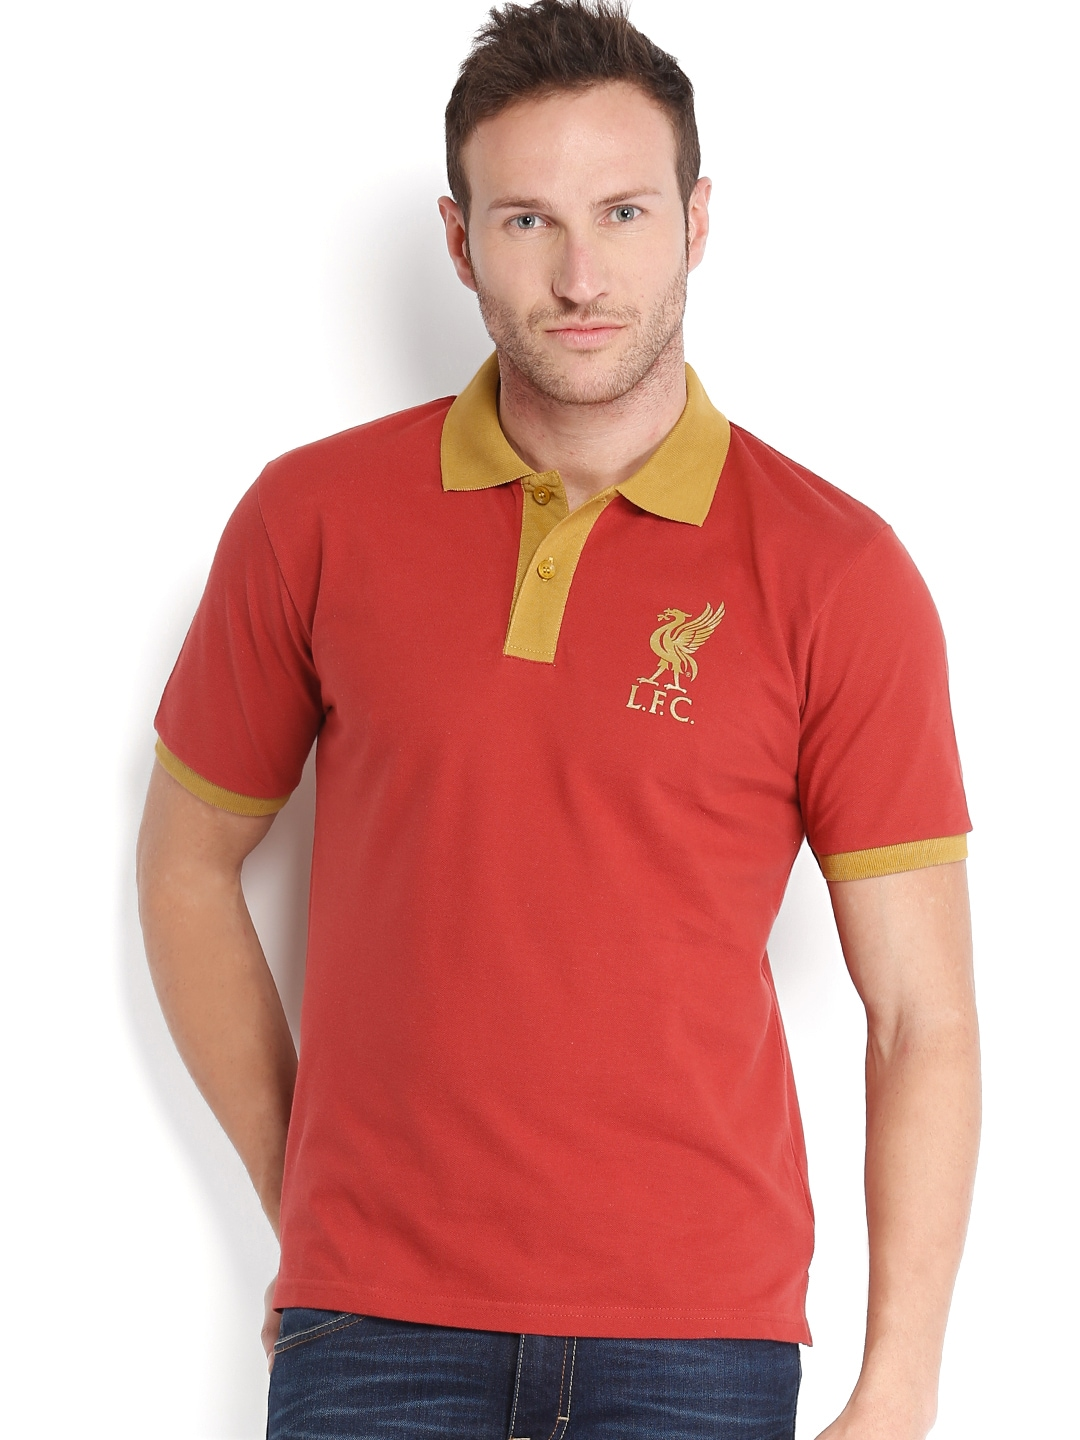 Shirt  Off Liverpool Football Club Uk Yellow Polo T Shirt